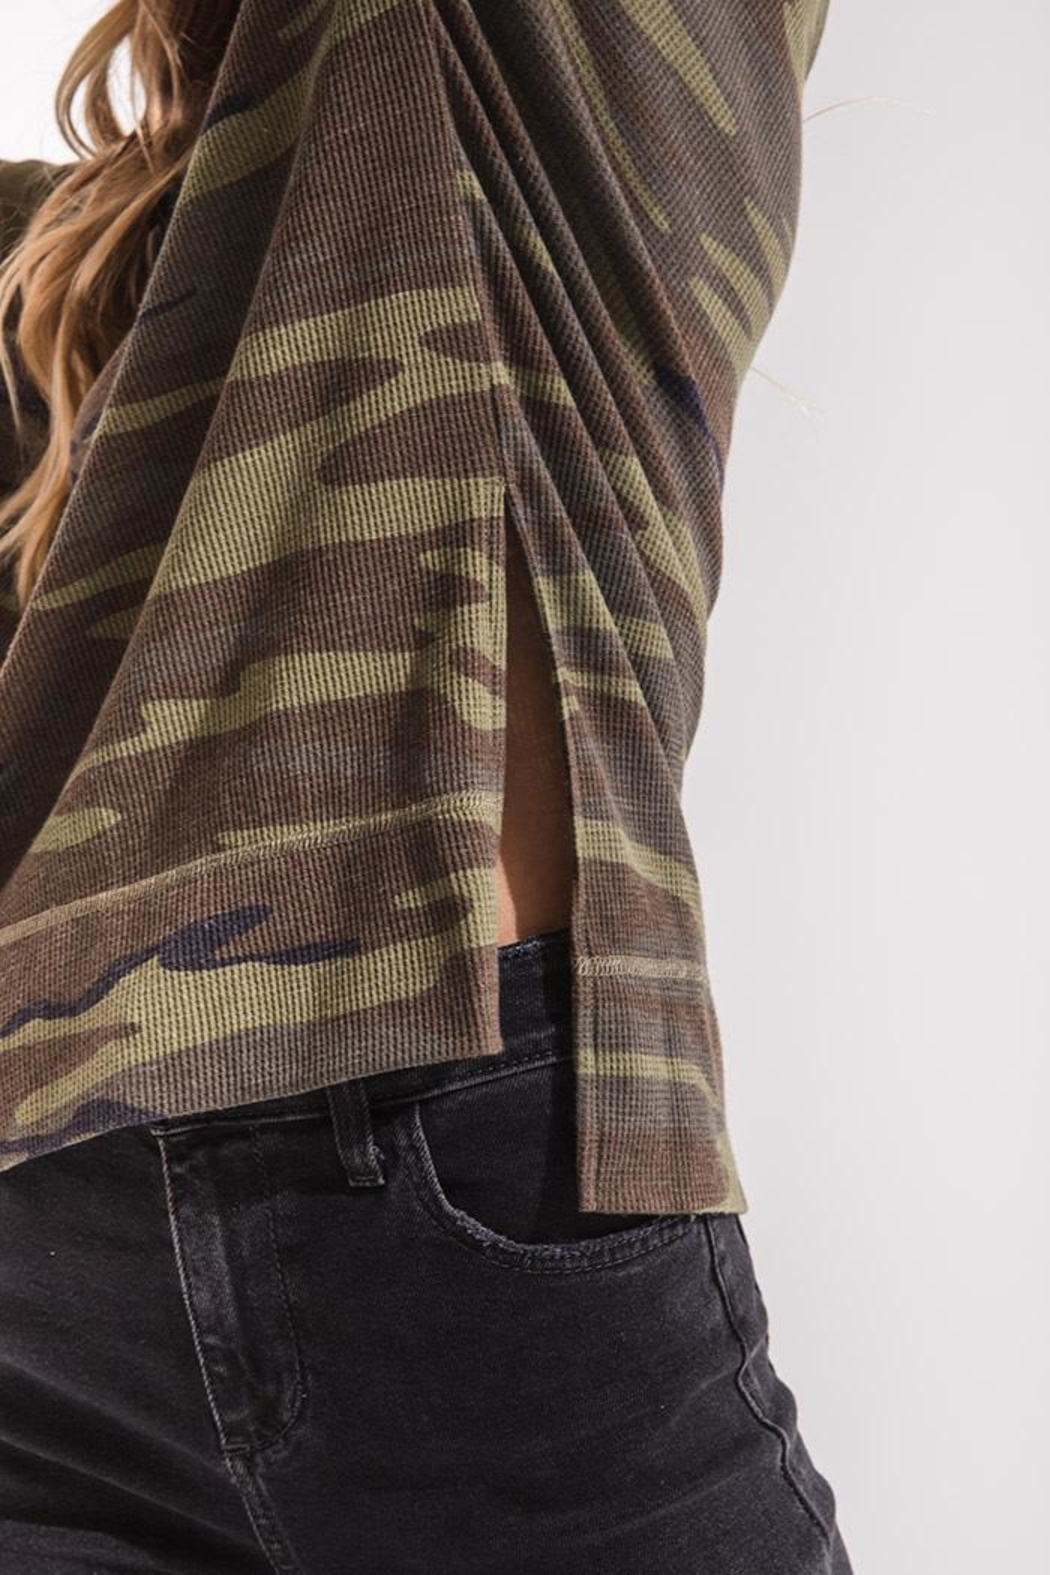 z supply Camo Thermal Top - Side Cropped Image